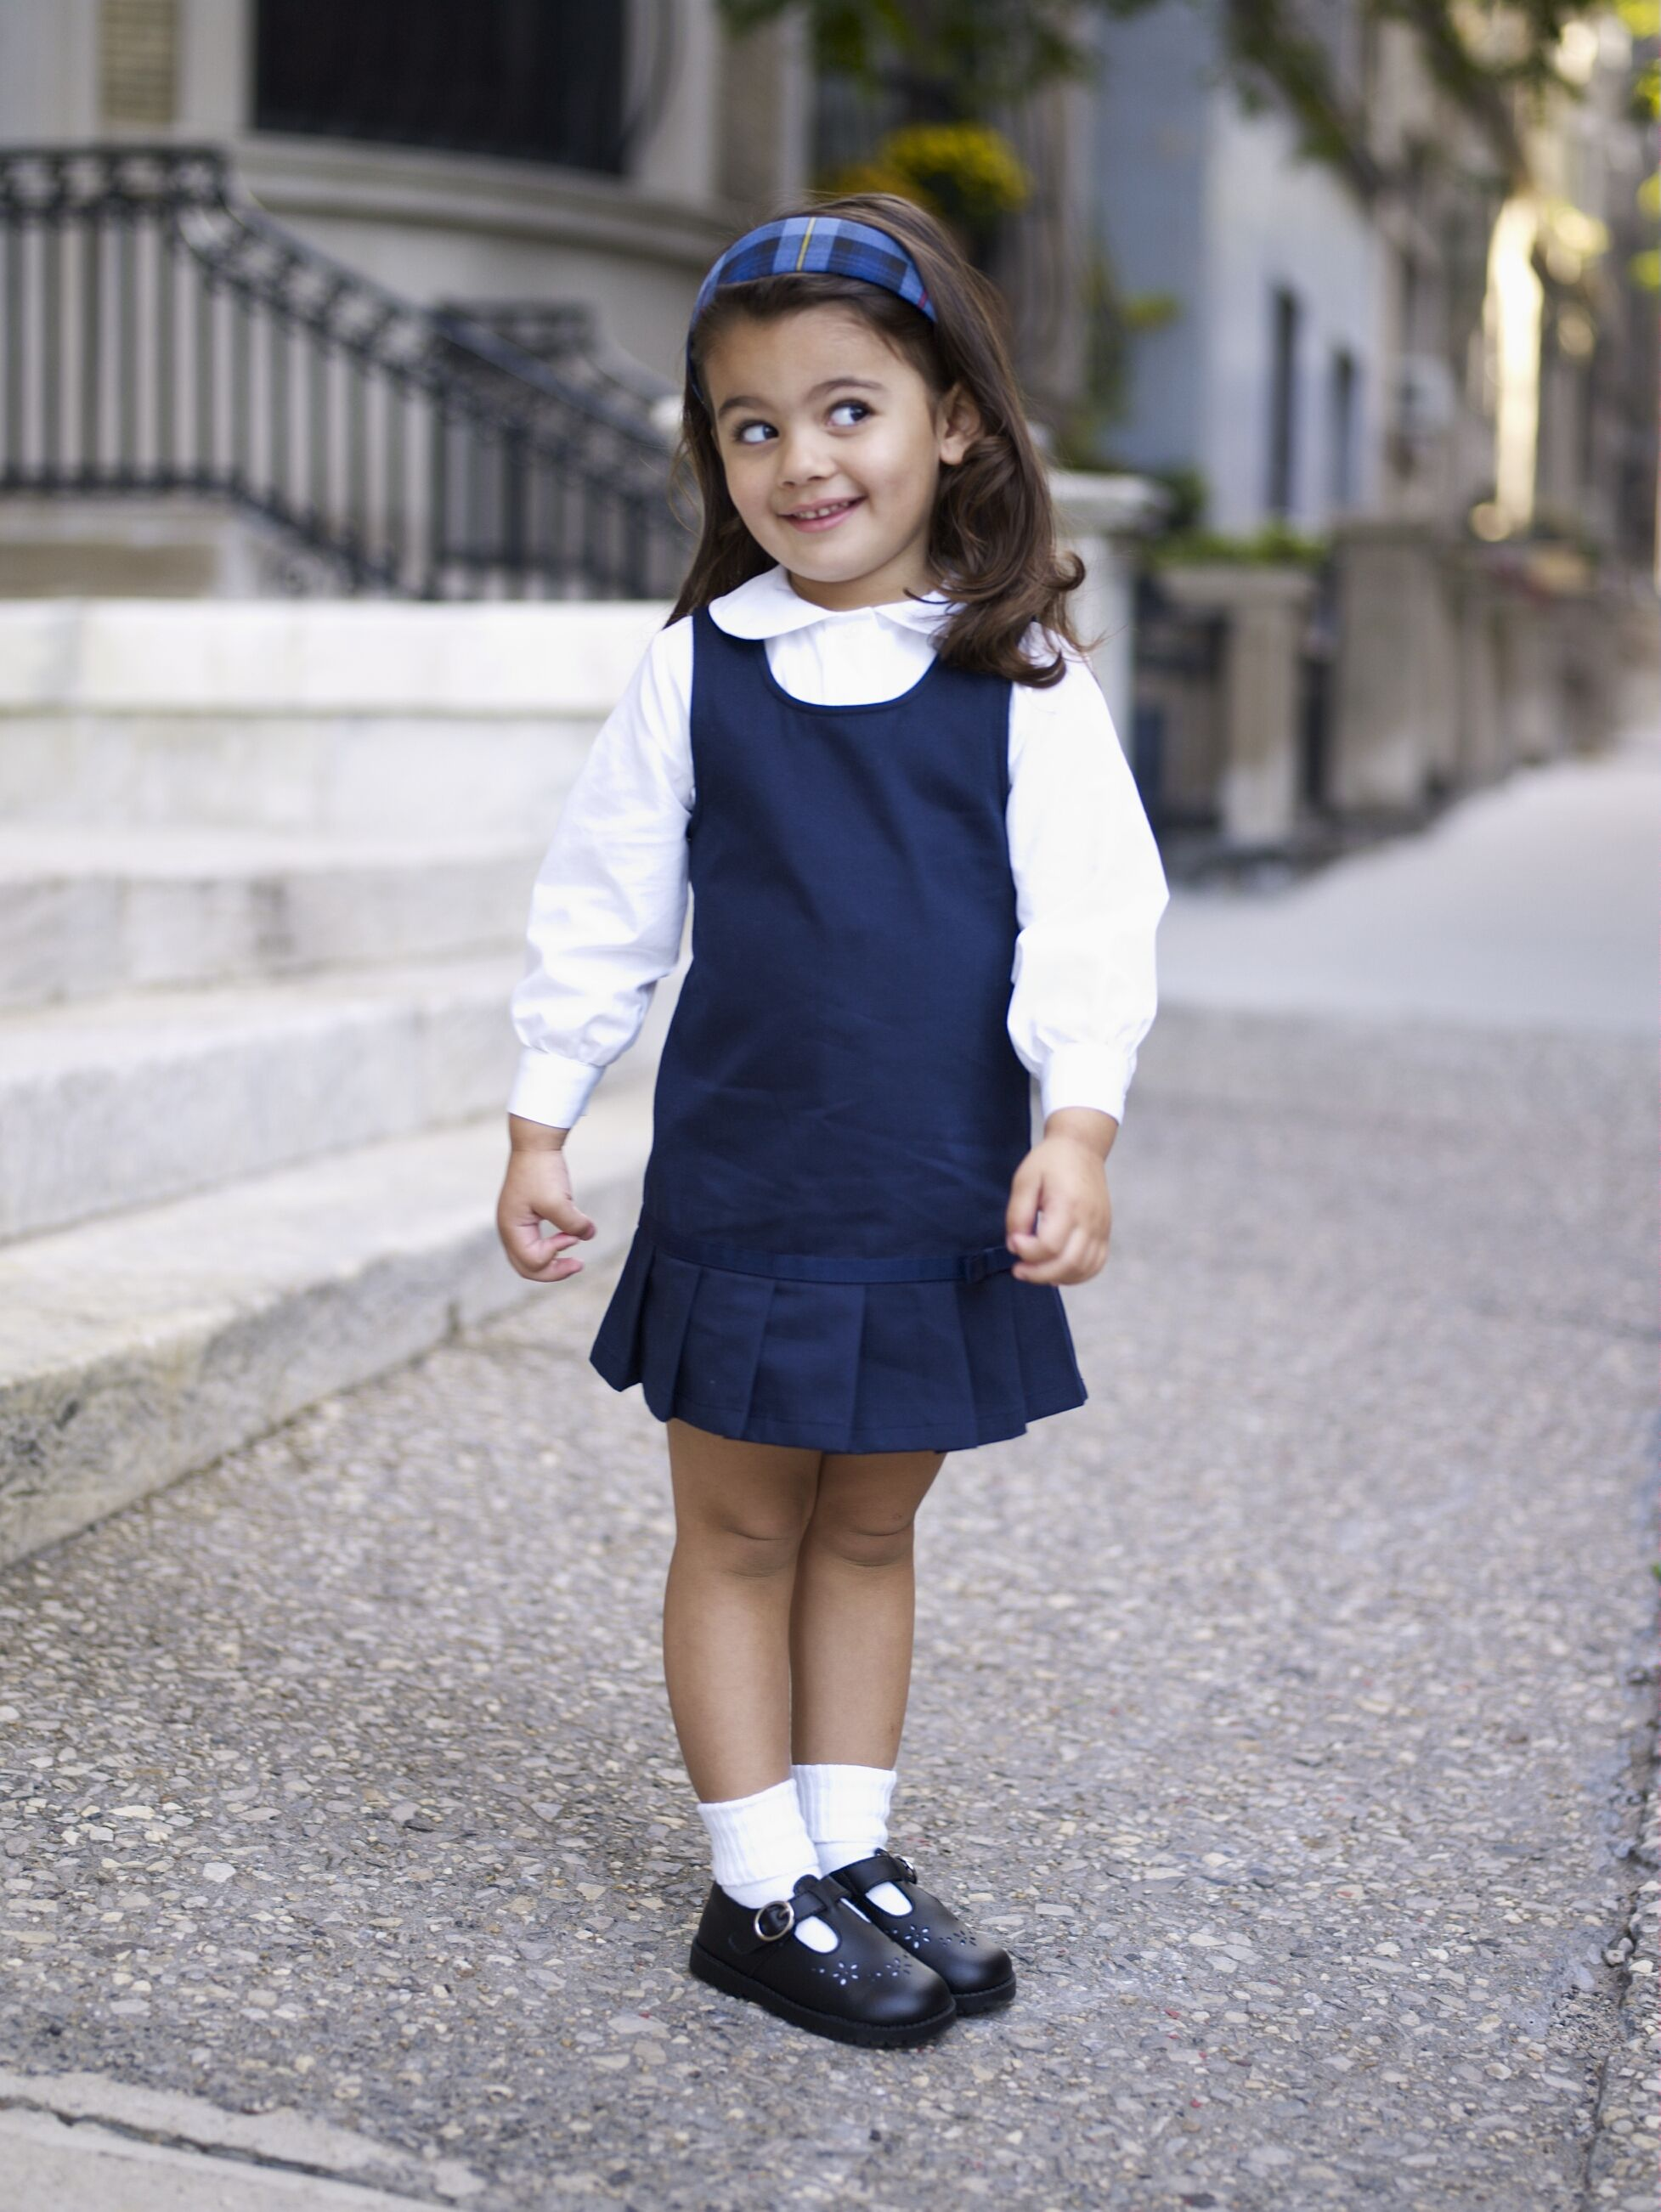 With you Private school uniforms for girls know